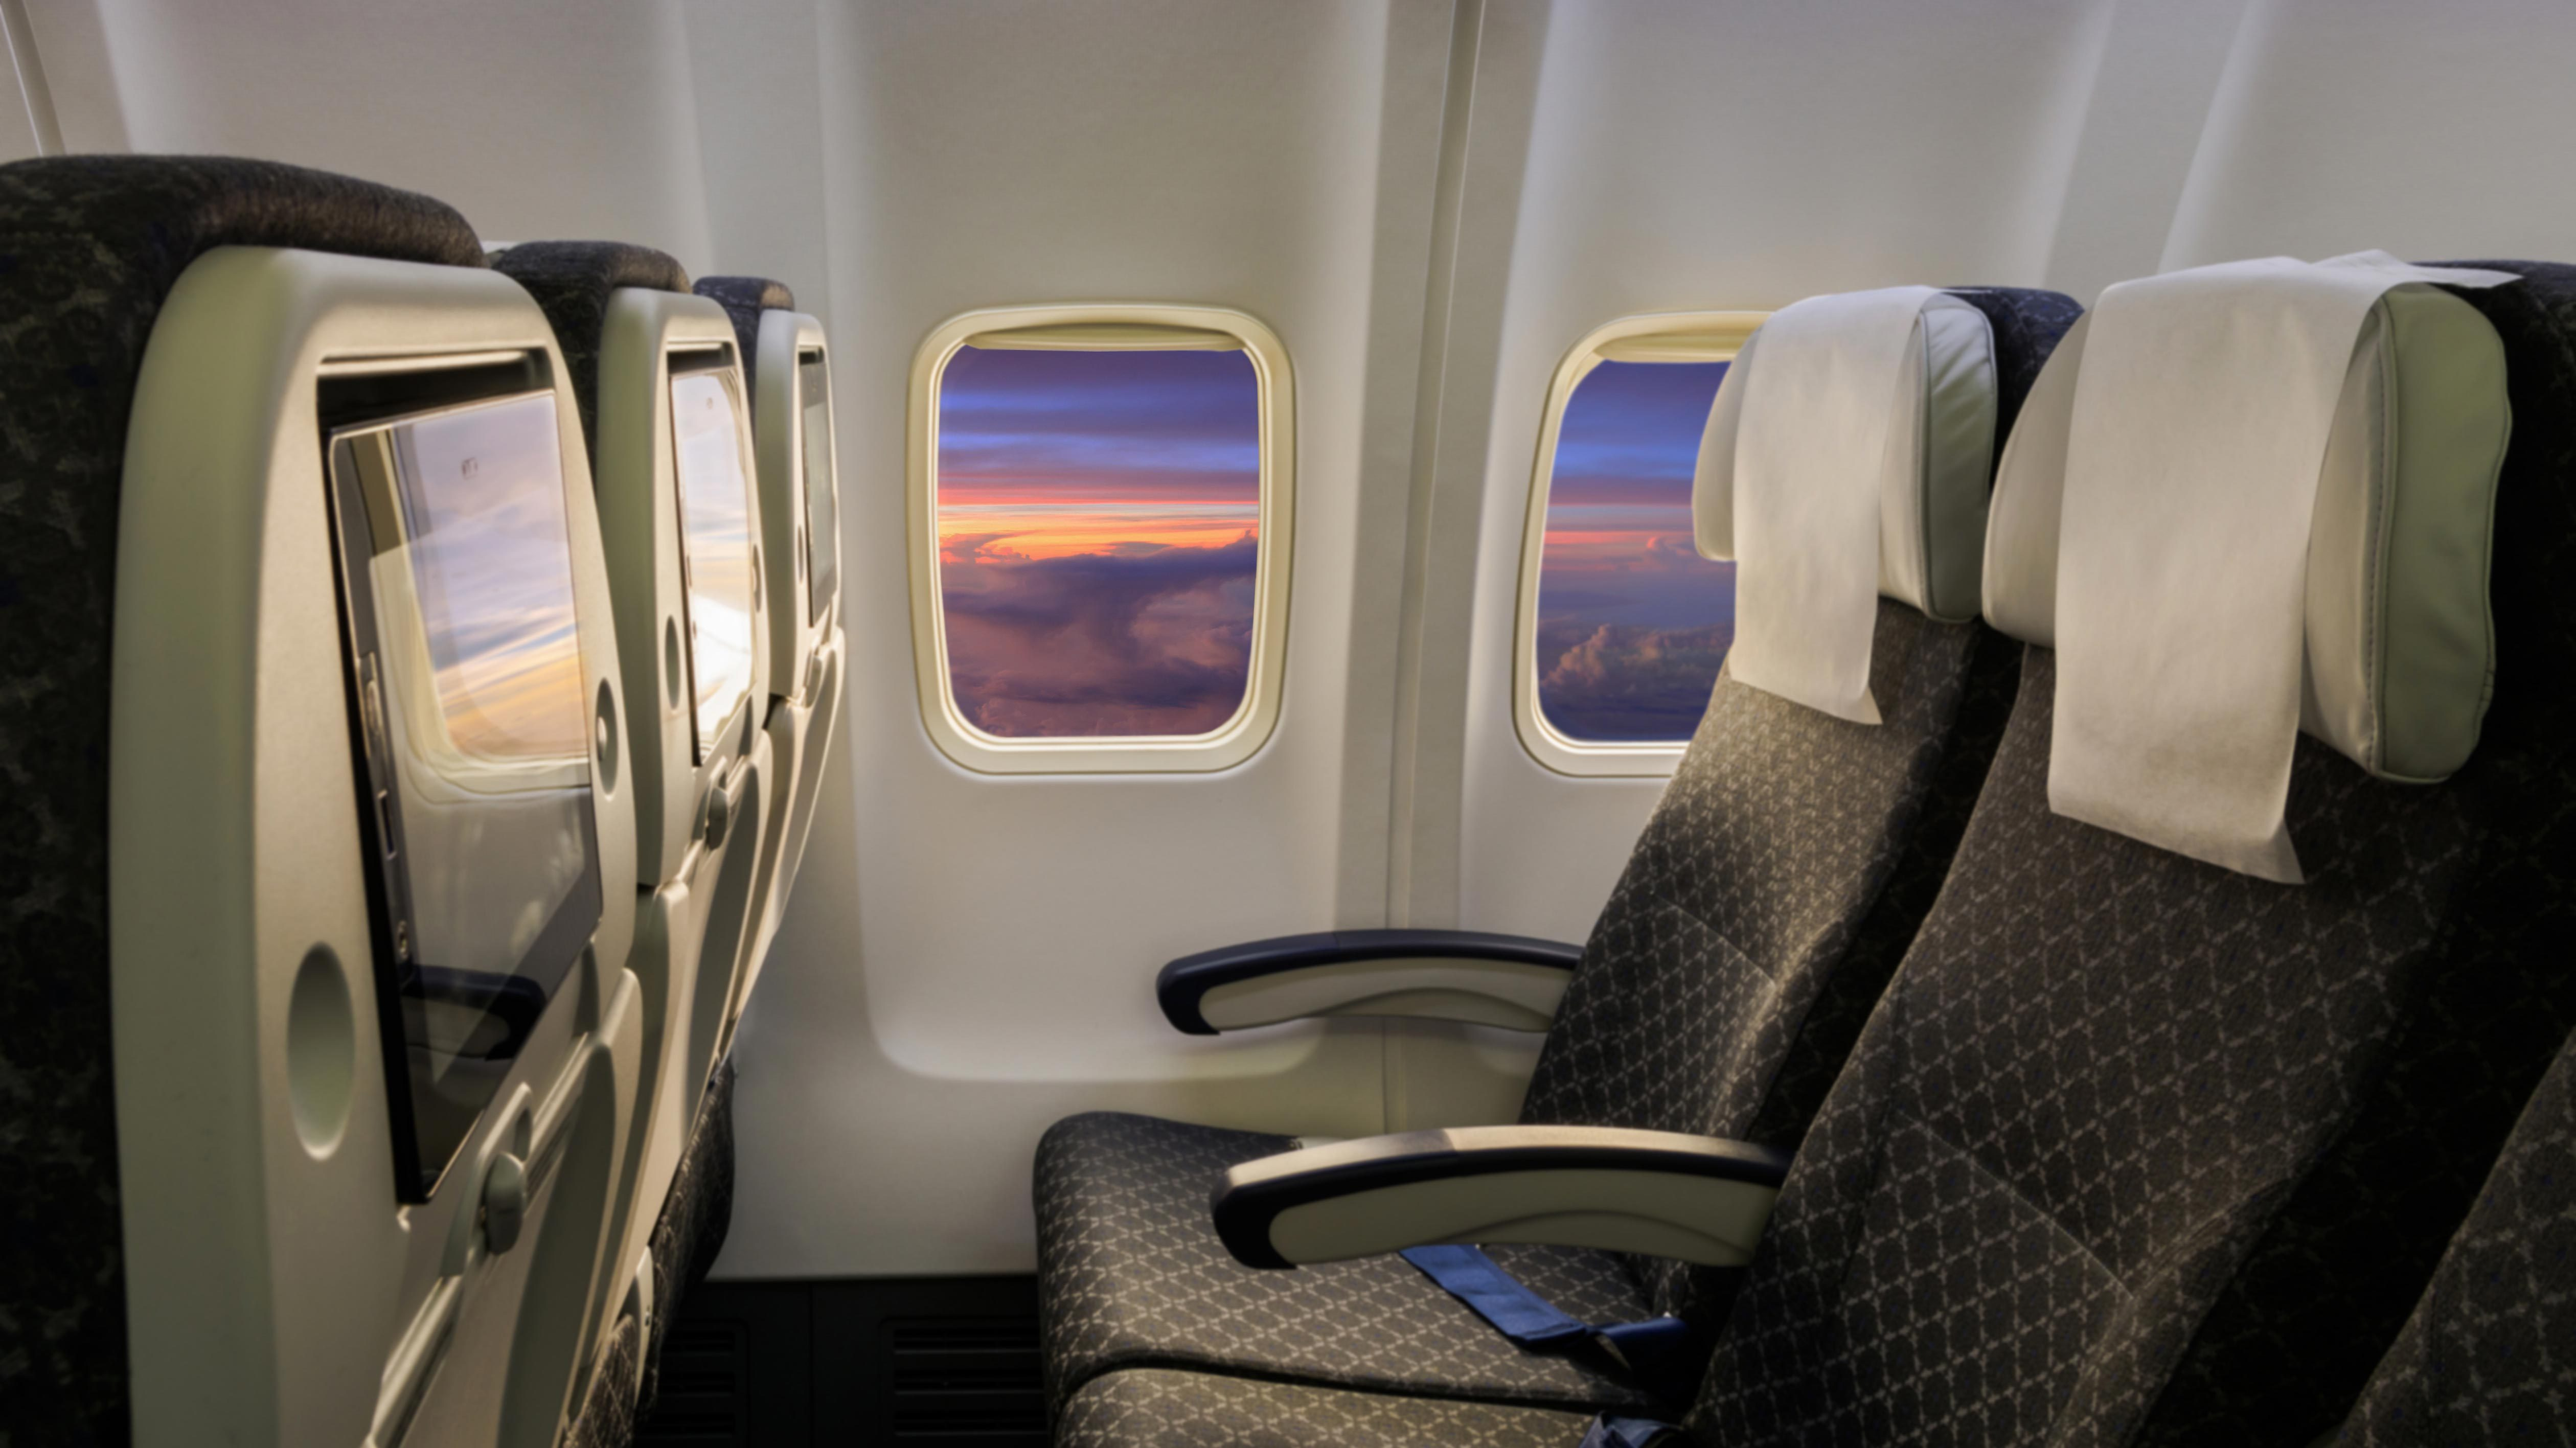 The Right Way to Germ-Proof Your Plane Seat | Reader's Digest